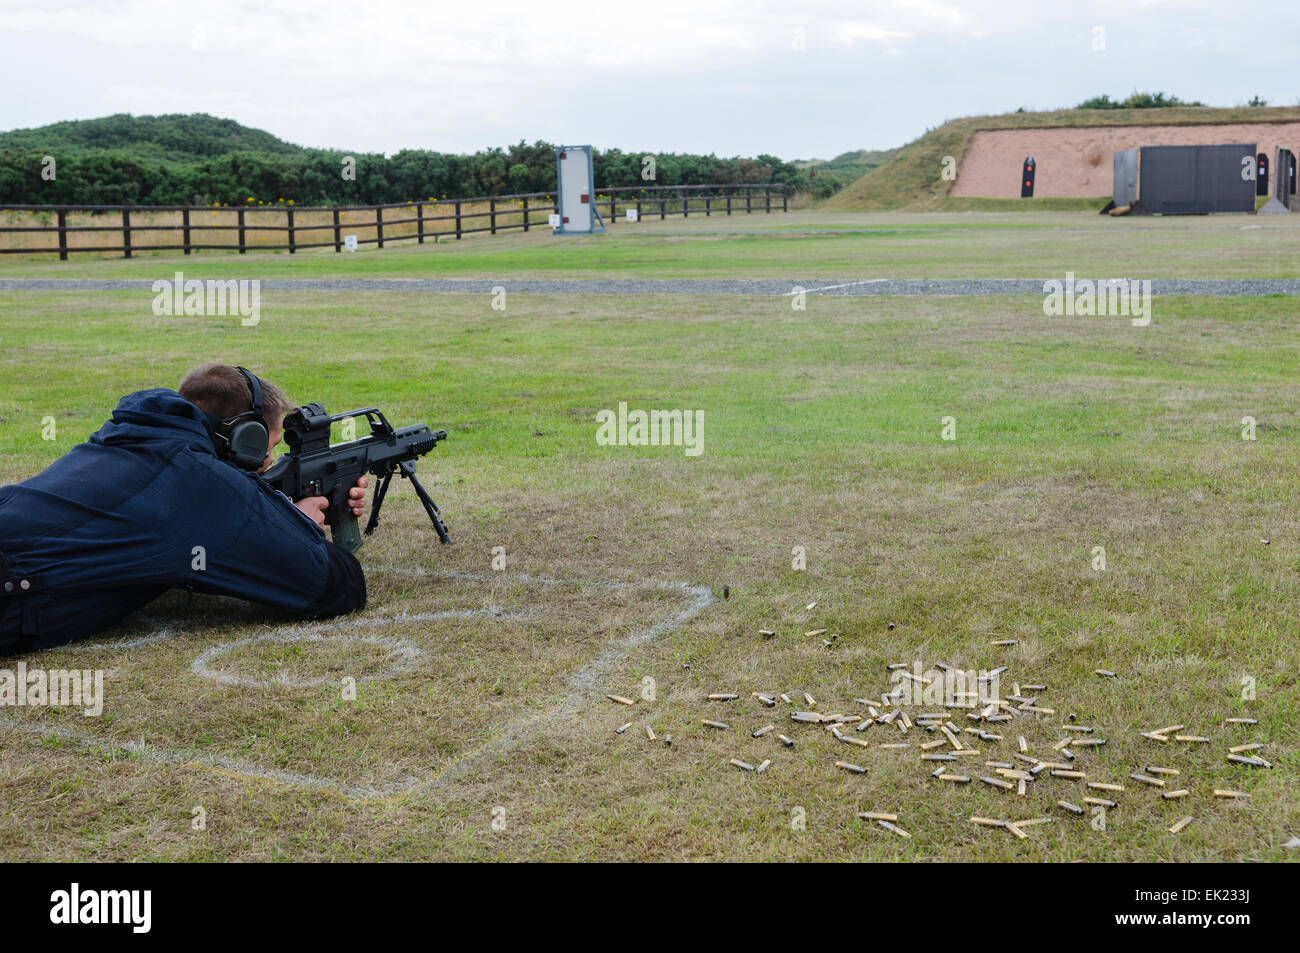 A man shoots a Remington 700 sniper rifle at a target on a firing range - Stock Image